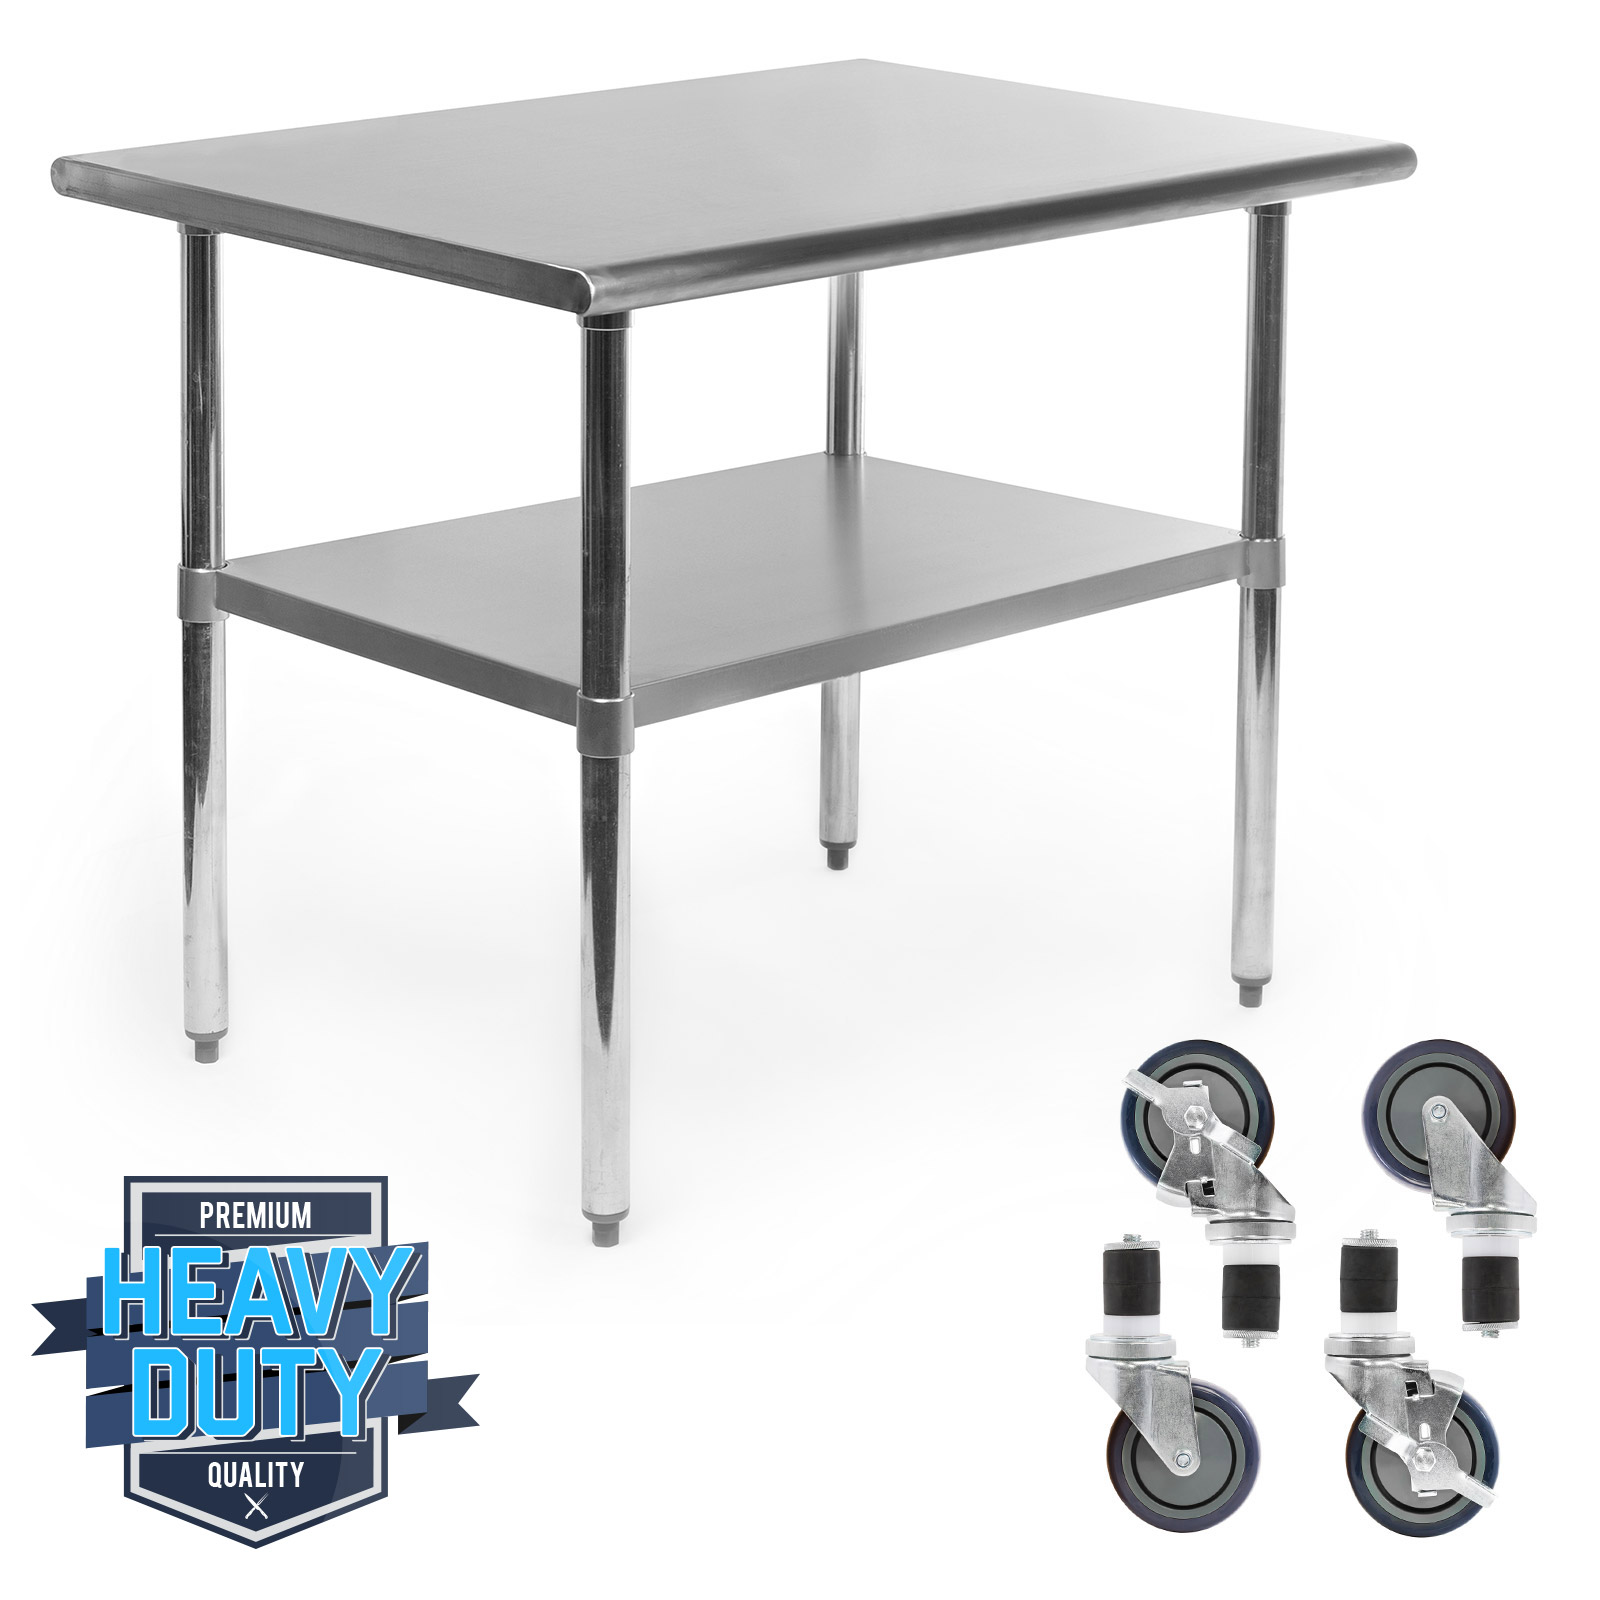 Stainless Steel Kitchen Work Table: Stainless Steel Commercial Kitchen Work Food Prep Table W